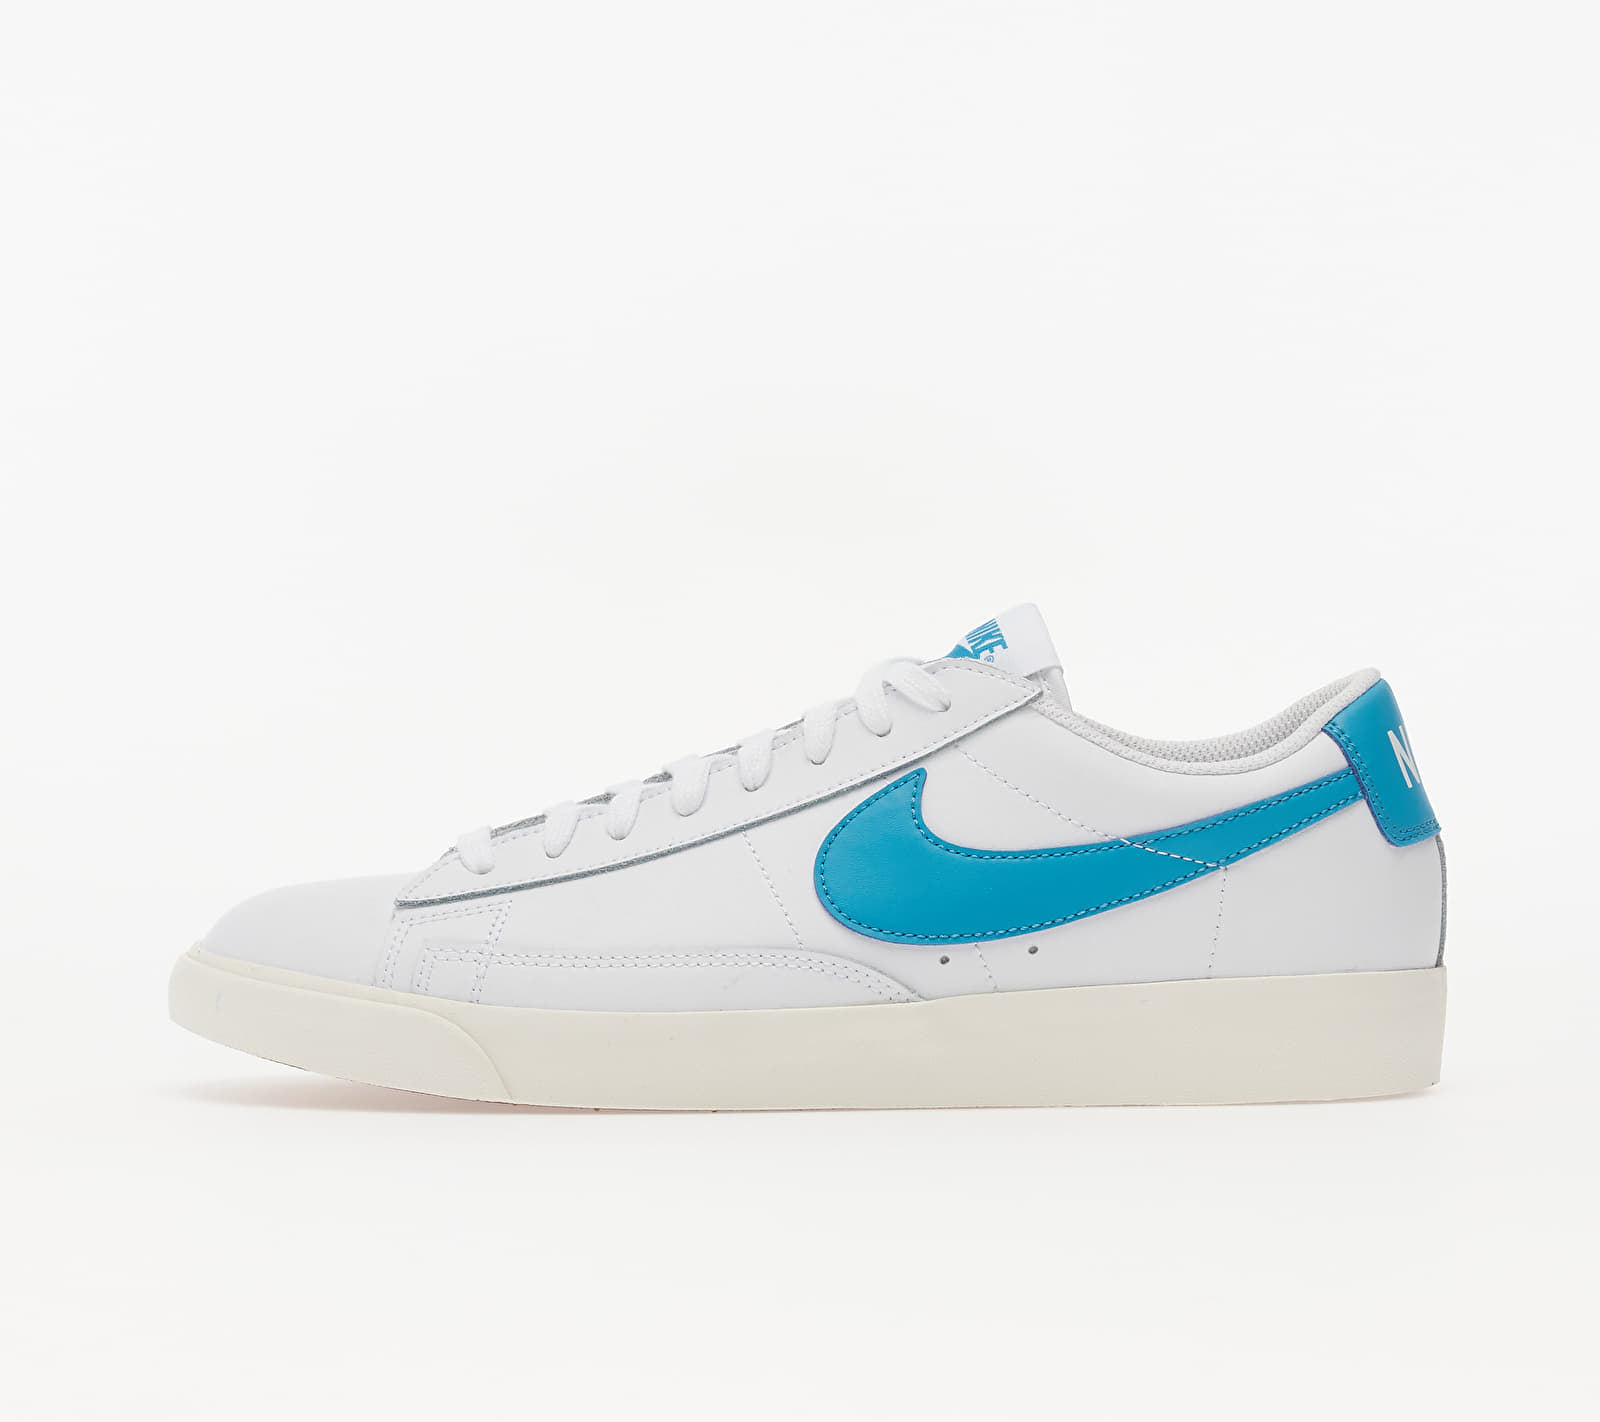 Nike Blazer Low Leather White/ Laser Blue-Sail EUR 45.5